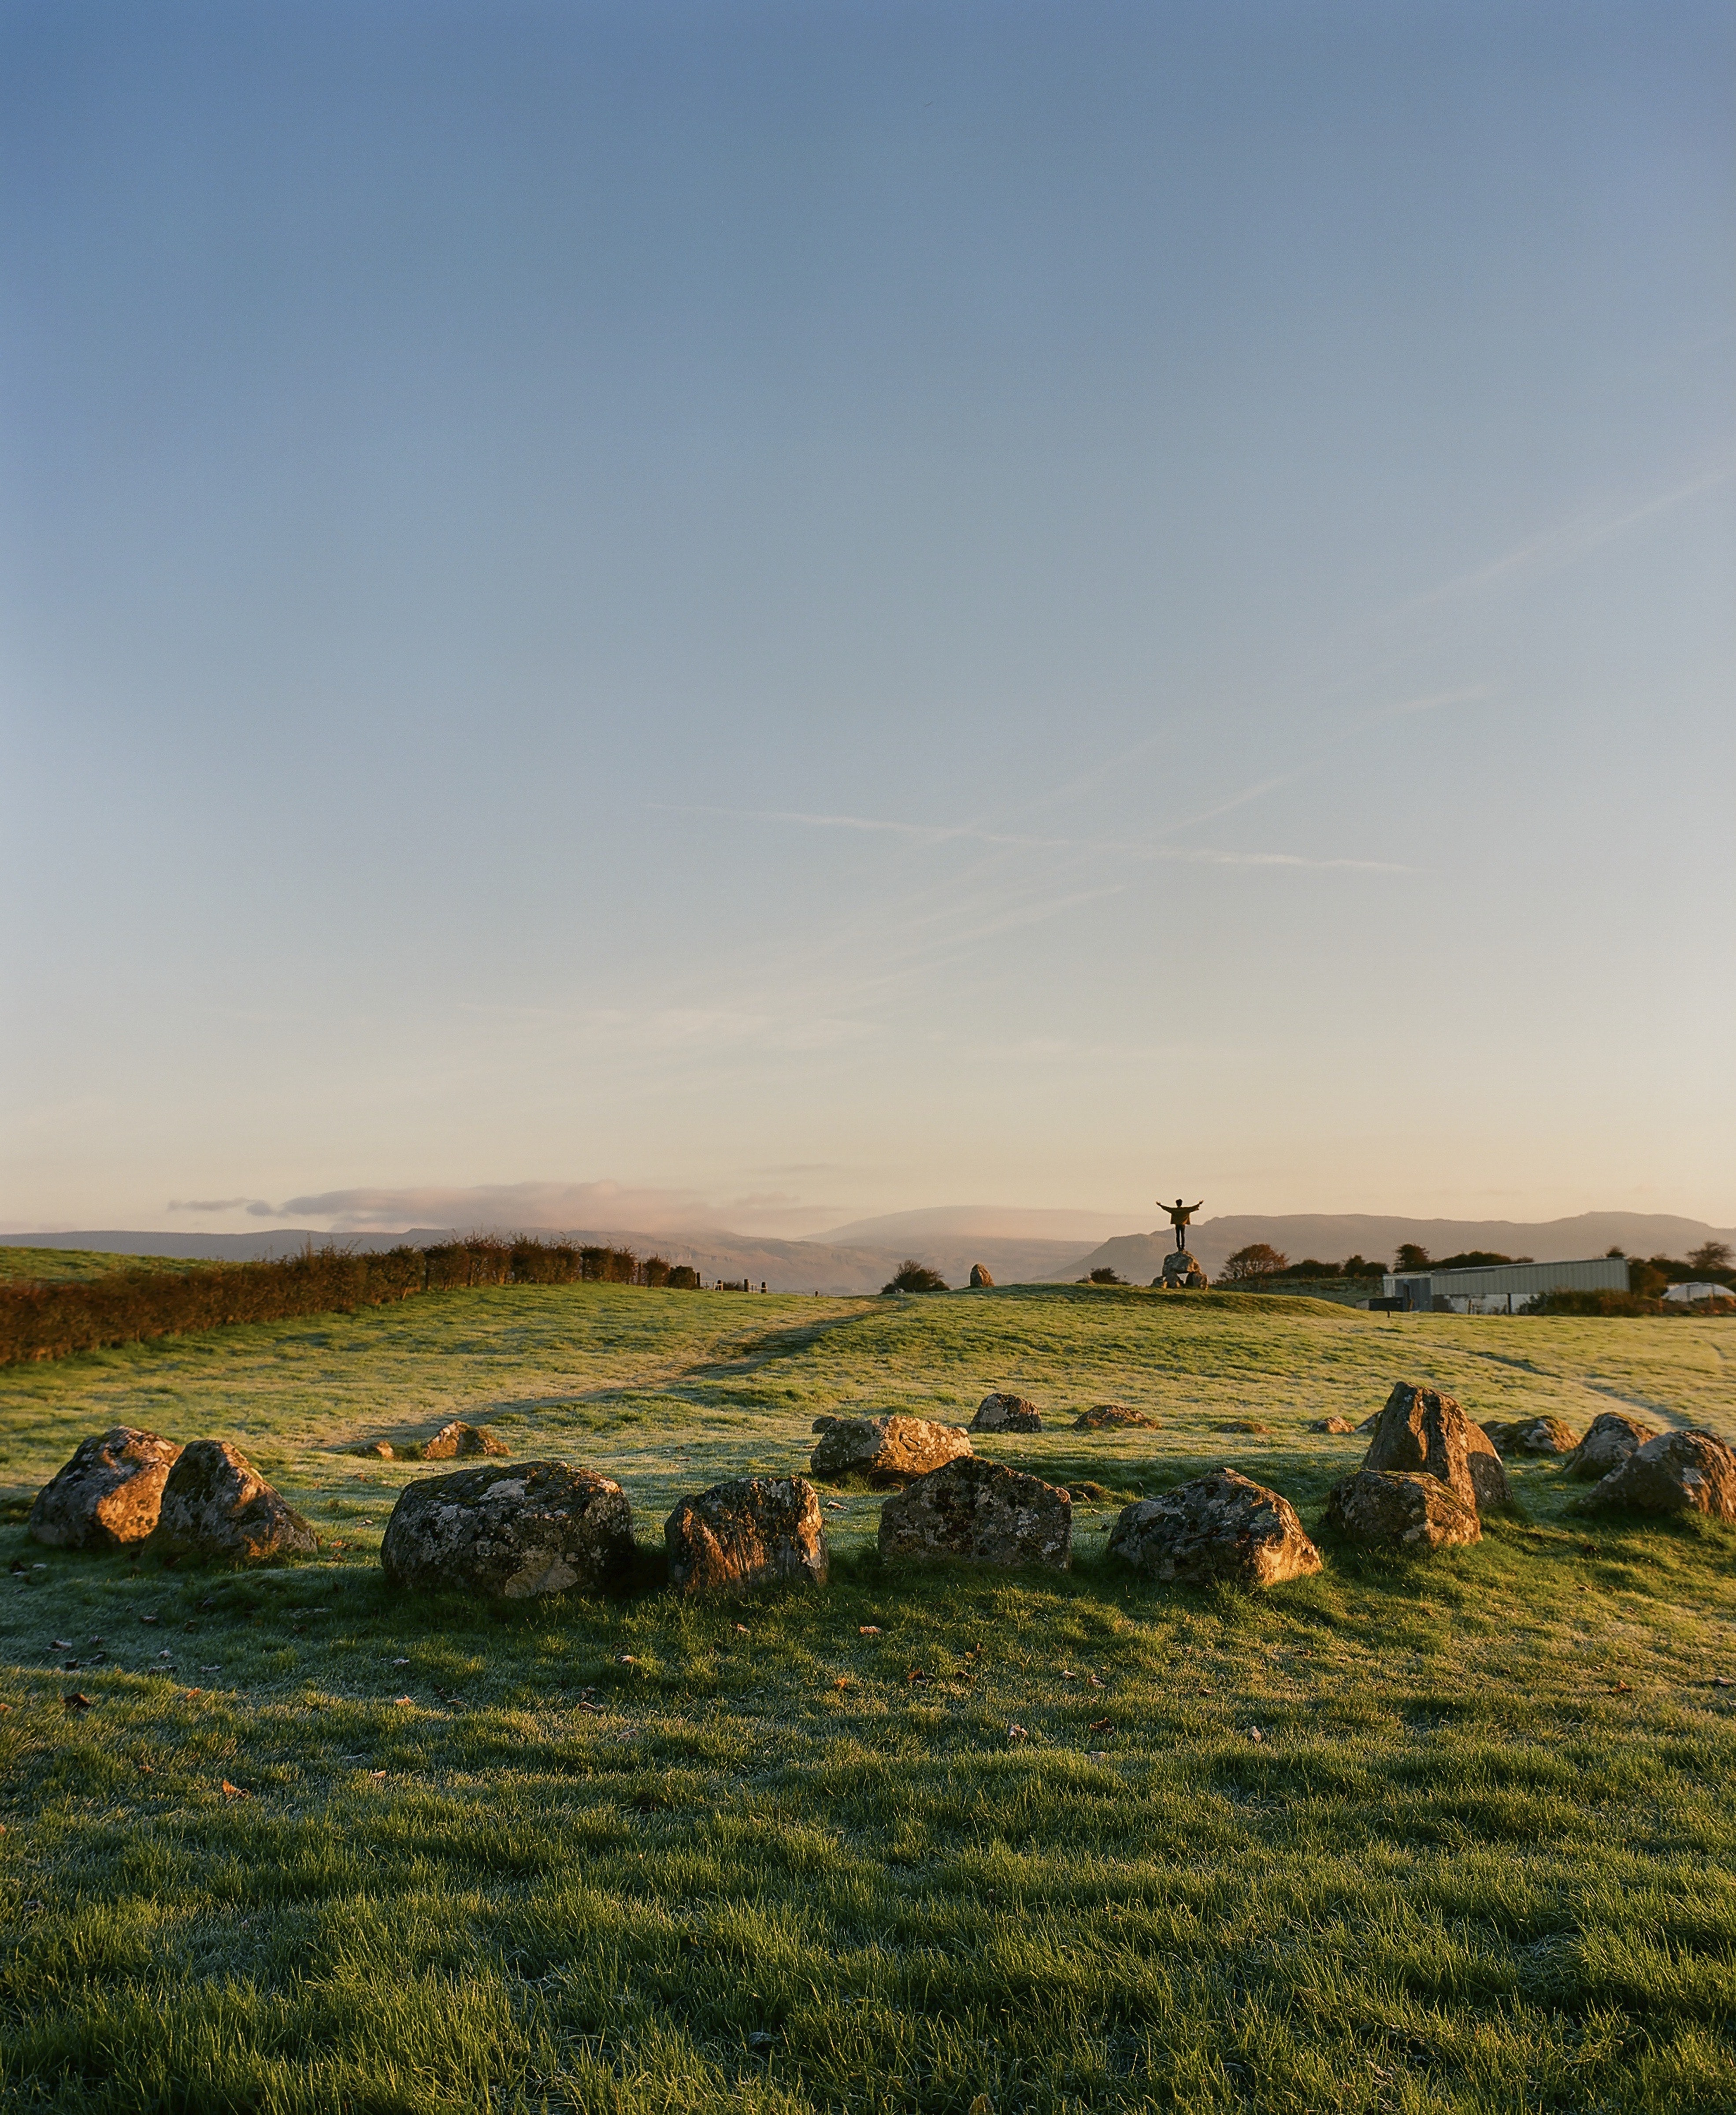 The Carrowmore Megalithic Cemetery is one of four passage tomb sites in Ireland. It dates back to 3700 B.C.